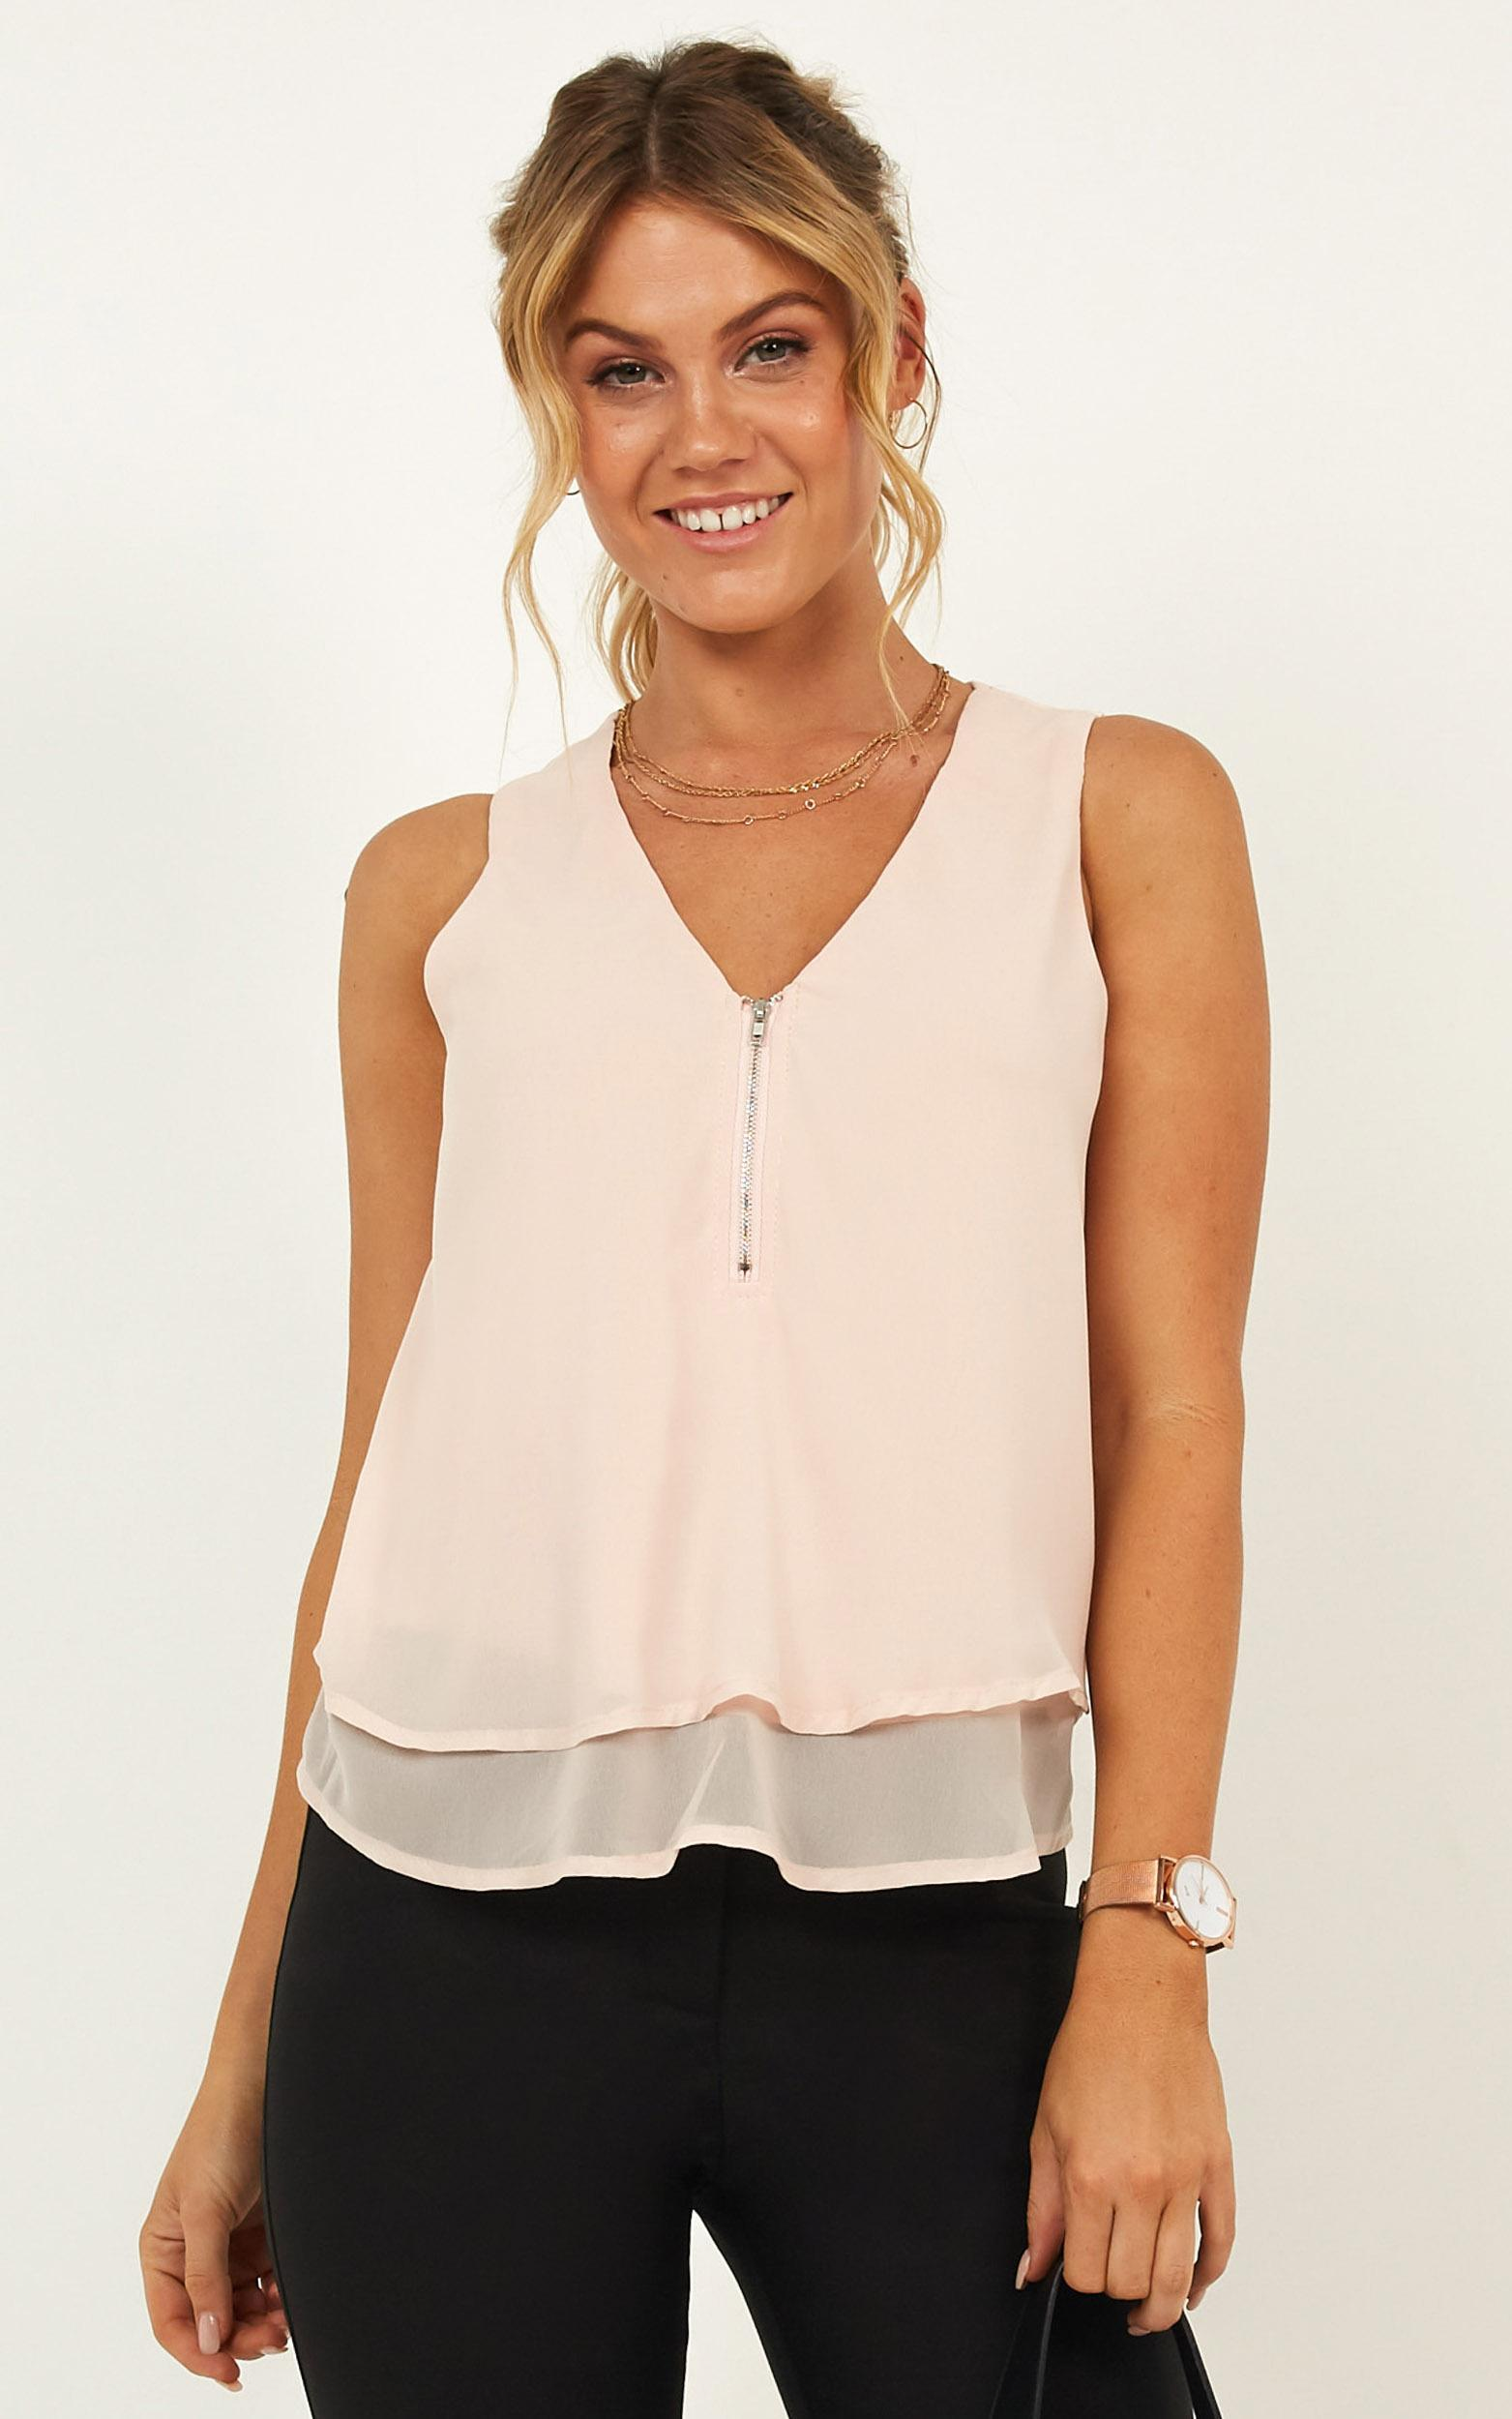 Powerful Impact Top In blush - 20 (XXXXL), Blush, hi-res image number null